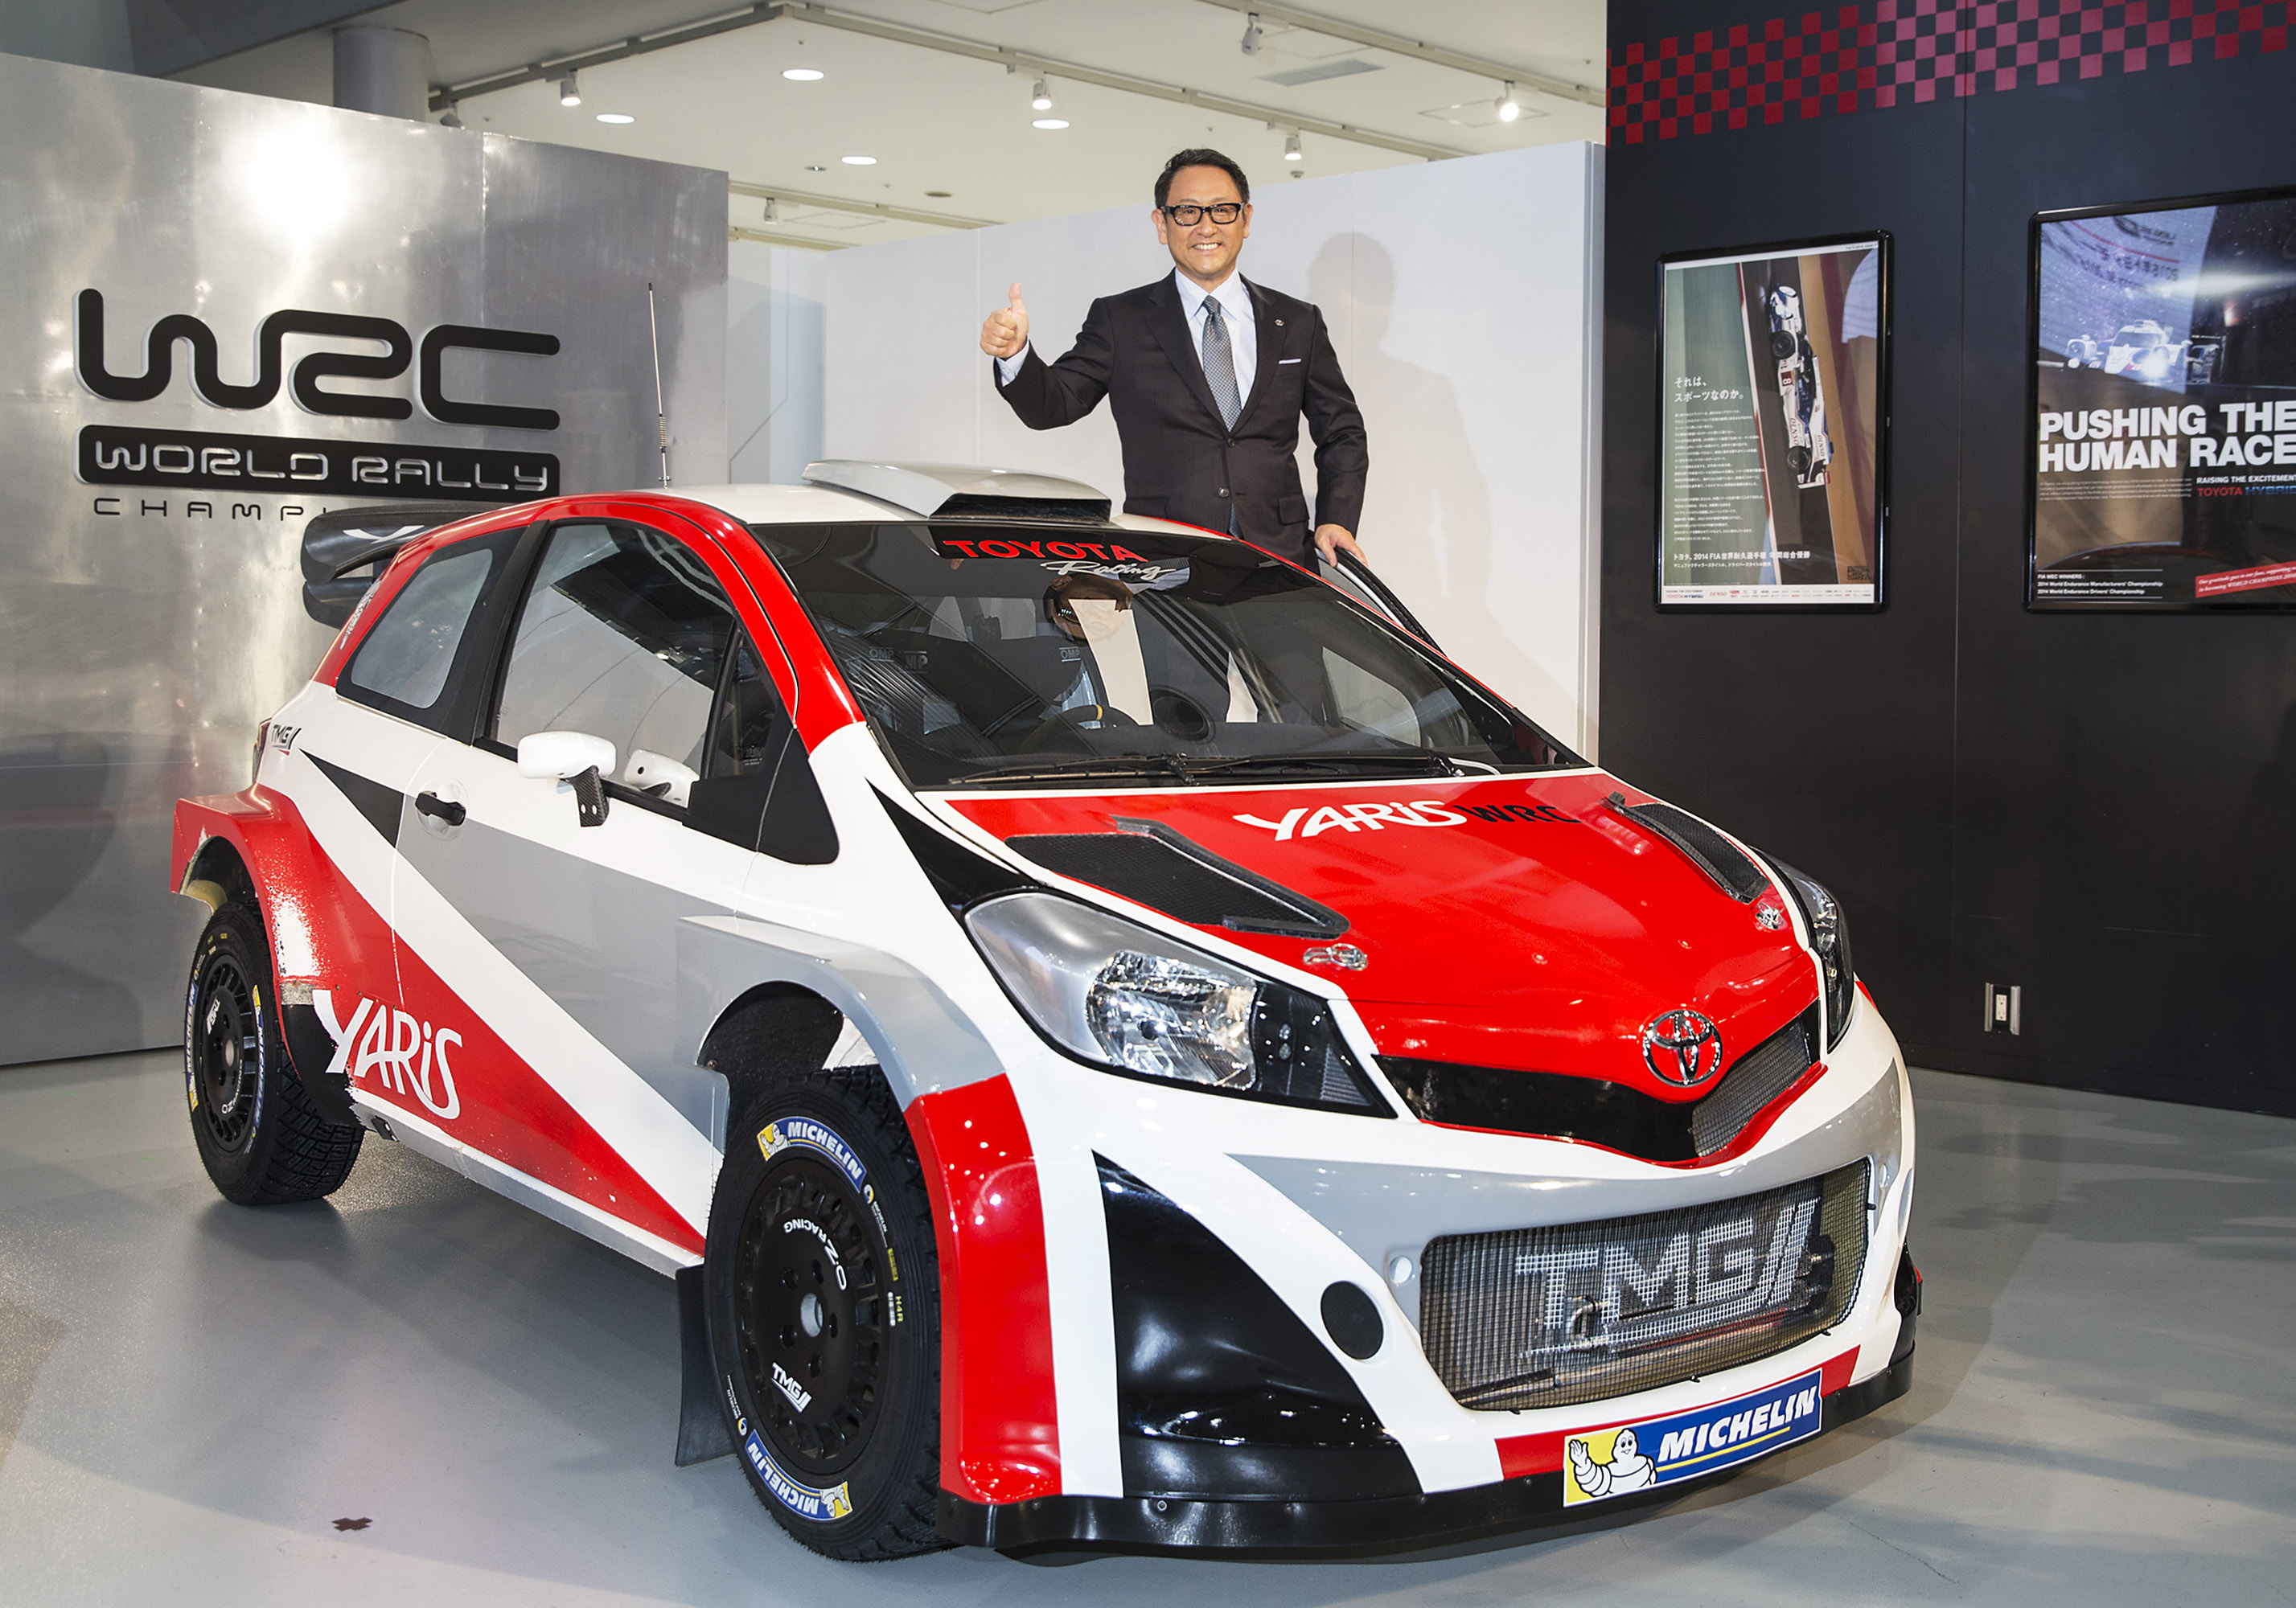 Toyota Returns To Fia World Rally Championship With Yaris Wrc Car Video